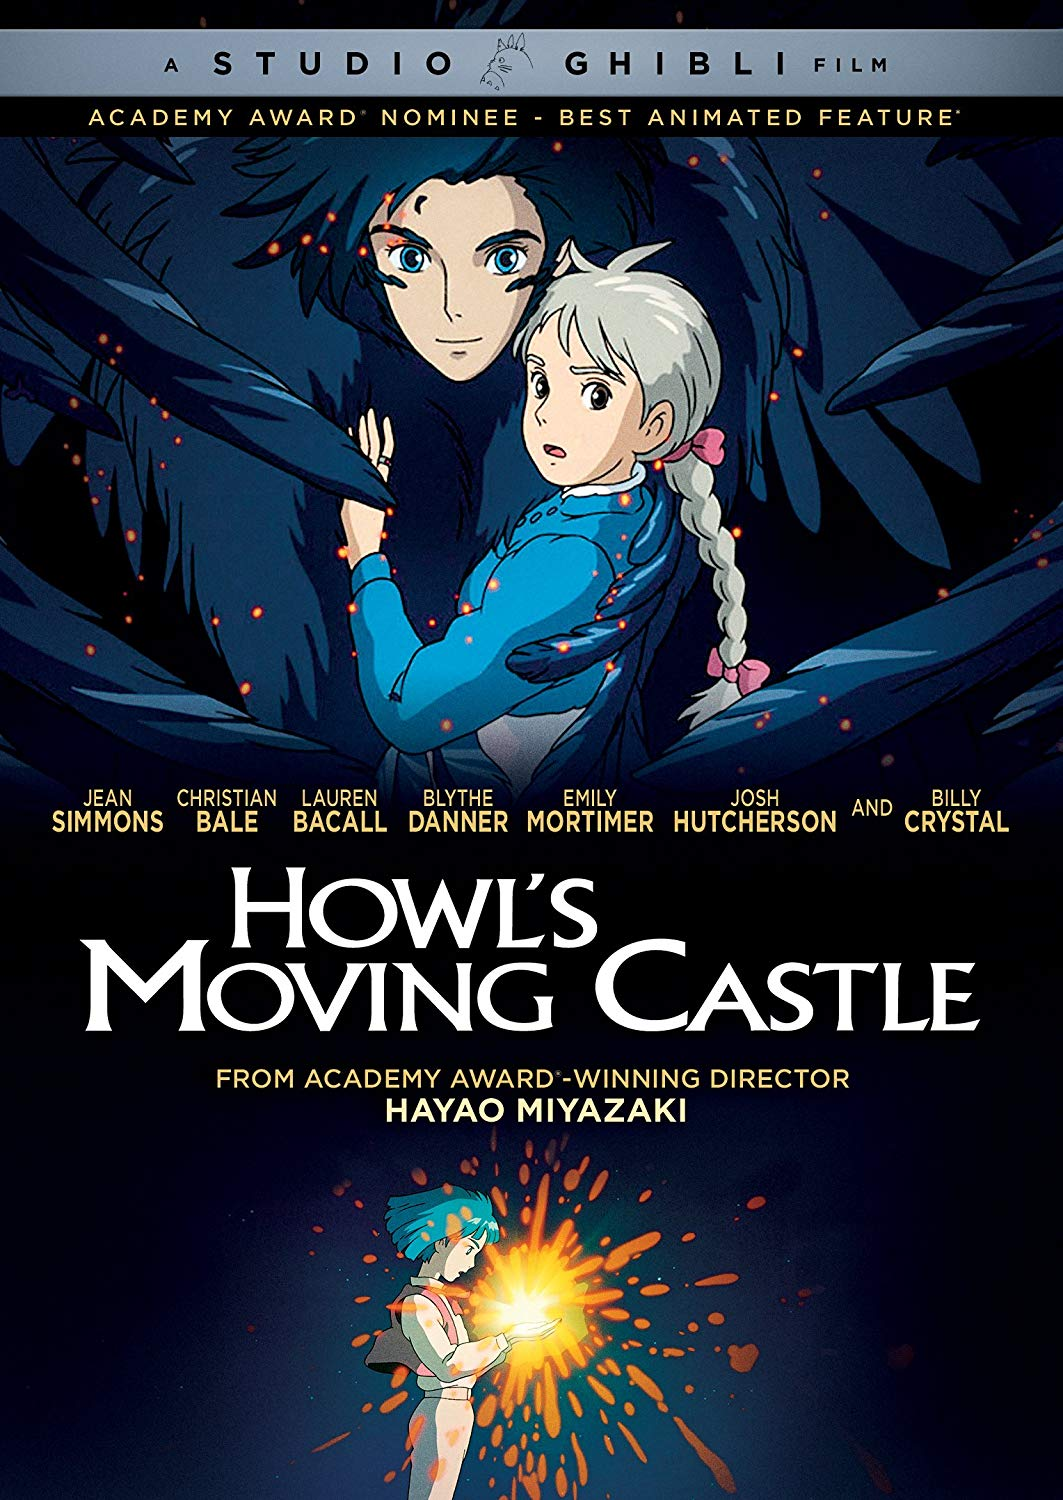 Howl's Moving Castle (2004) - Directed by: Hayao MiyazakiStarring: Christian Bale, Emily Mortimer, Billy CrystalRated: PG for Frightening Images, And Brief Mild LanguageRunning Time: 1h 59mTMM Score: 4.5 StarsSTRENGTHS: Animation, Themes, Characters, Lots of FunWEAKNESSES: Ending